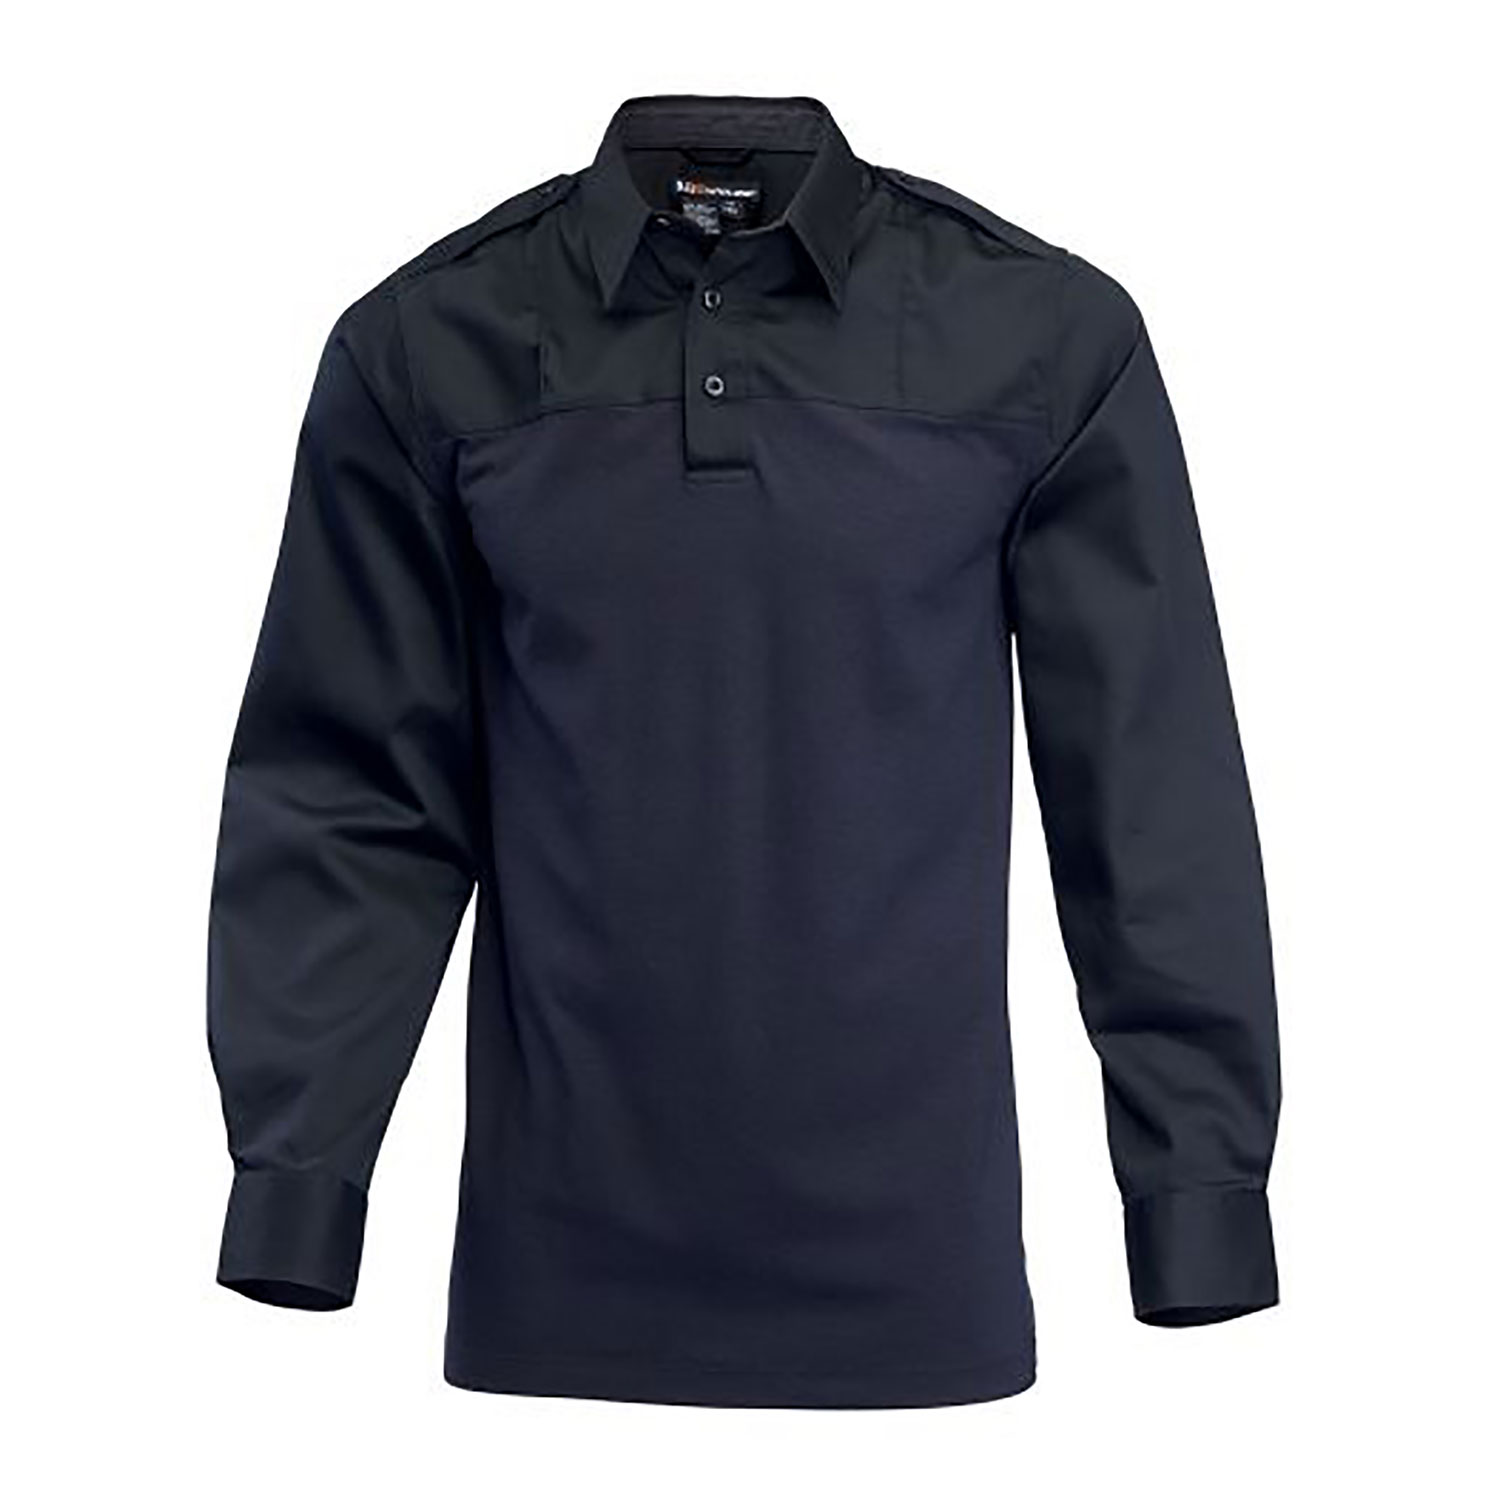 5.11 Rapid PD LS Shirt